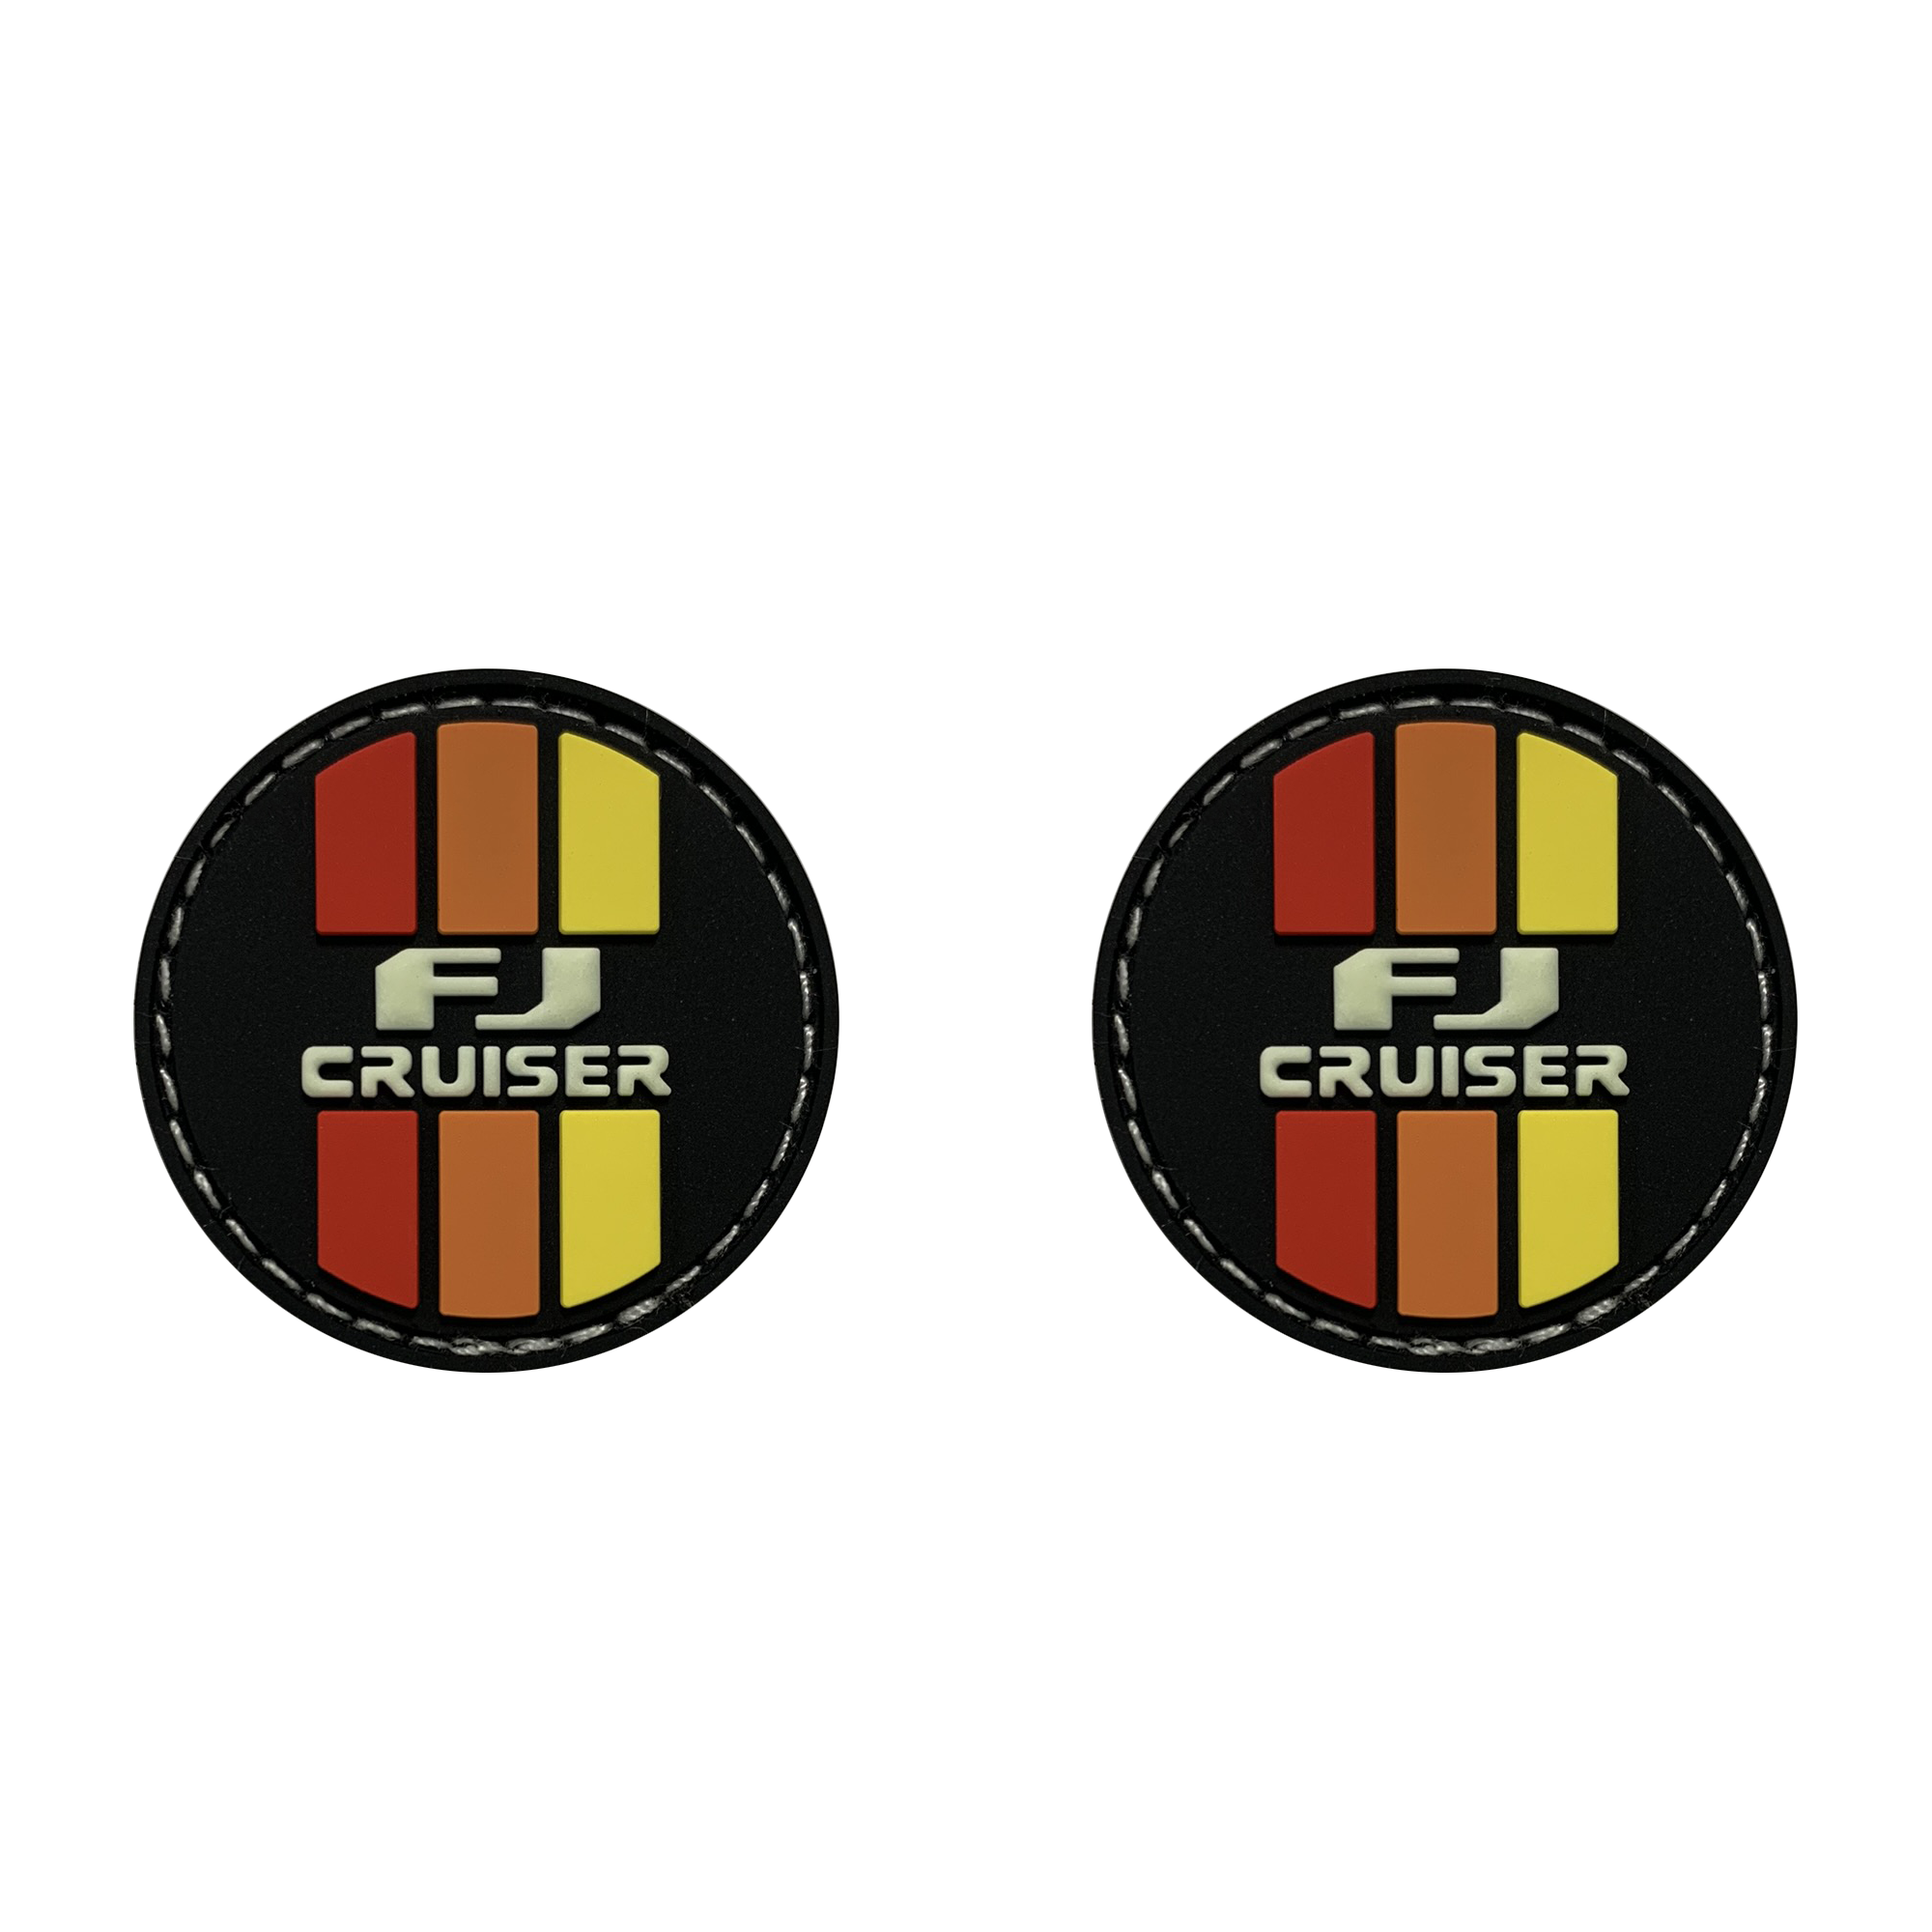 FJ Cruiser Retro Circle Ranger Eye Patches